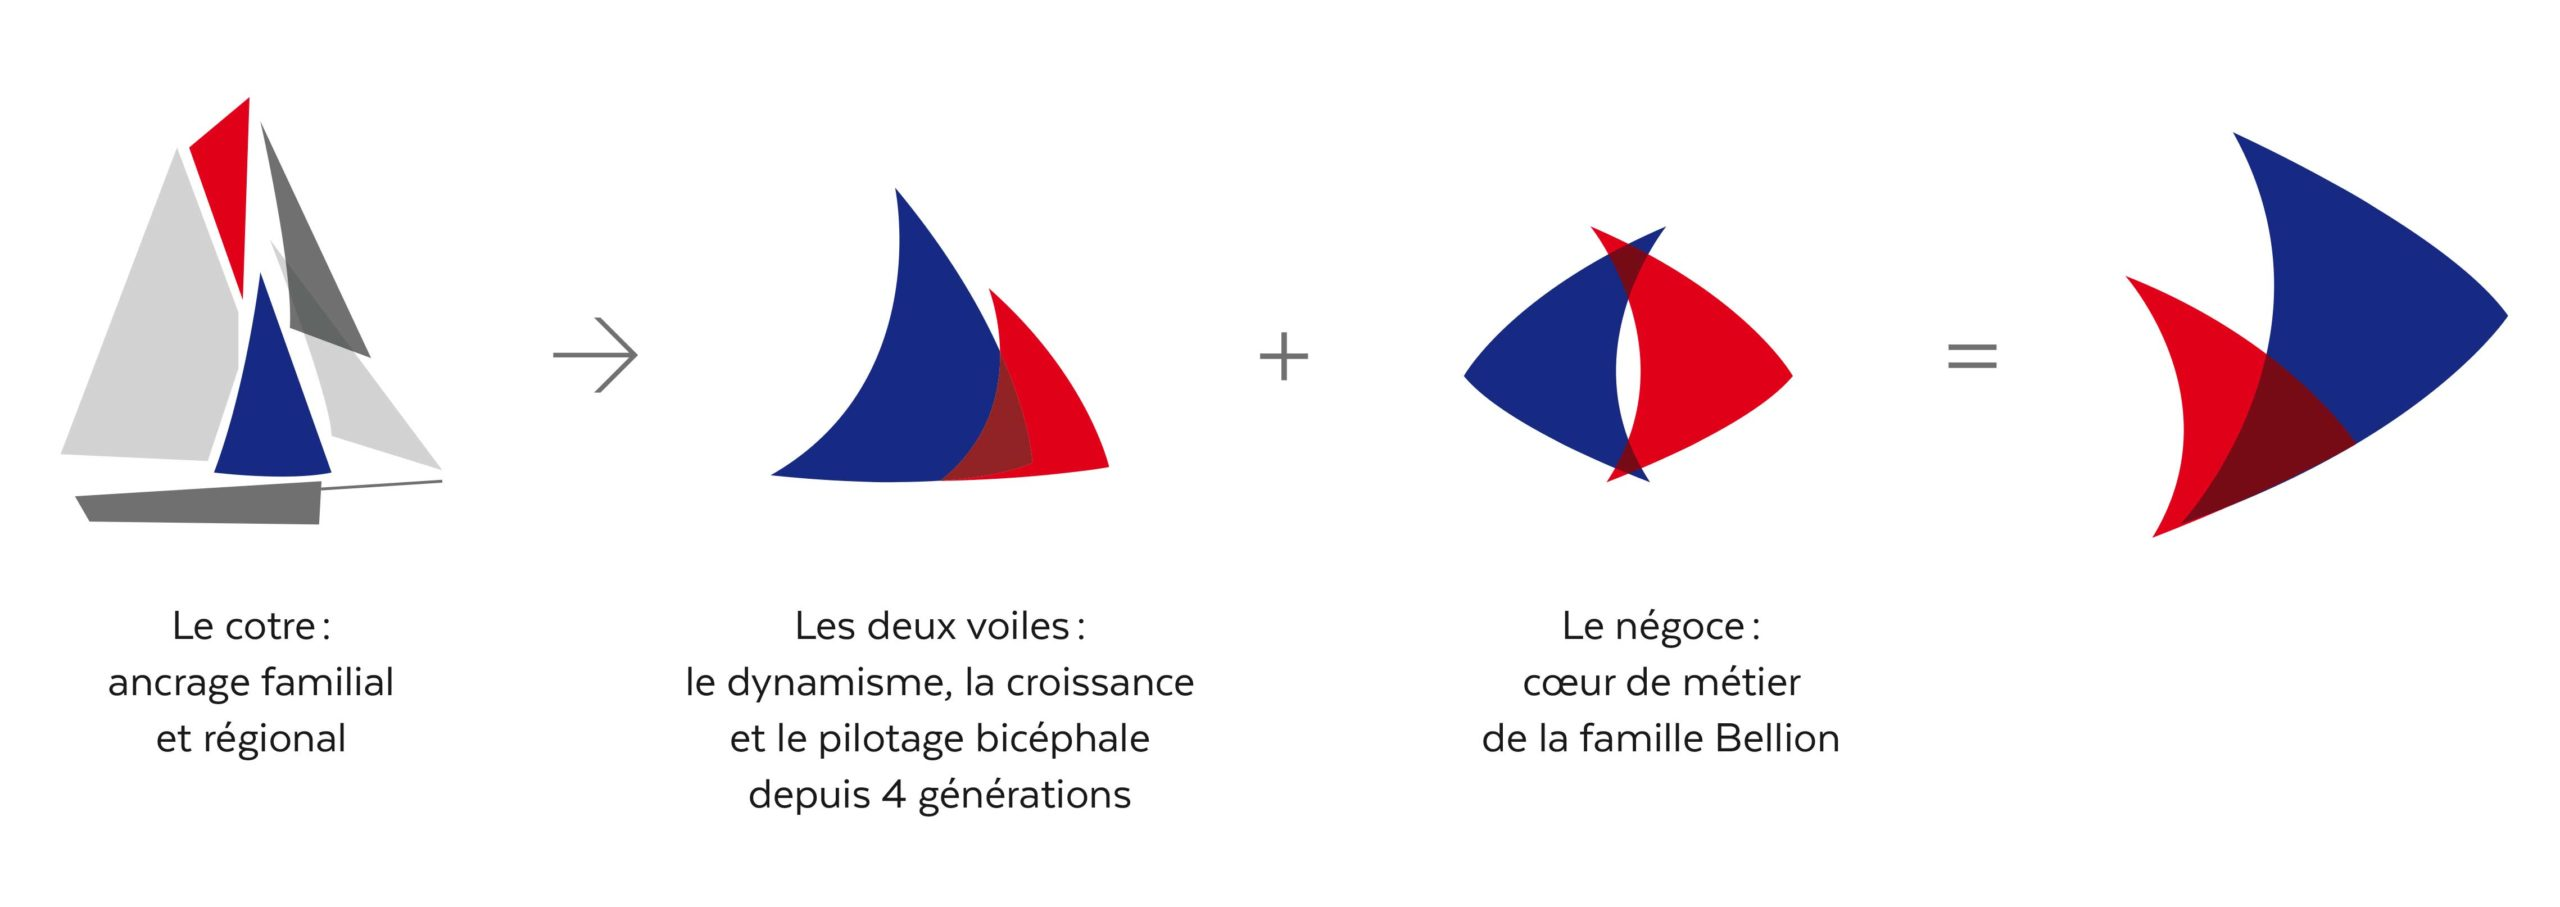 Cofibel Identite Visuelle Charte Graphique Concept Scaled